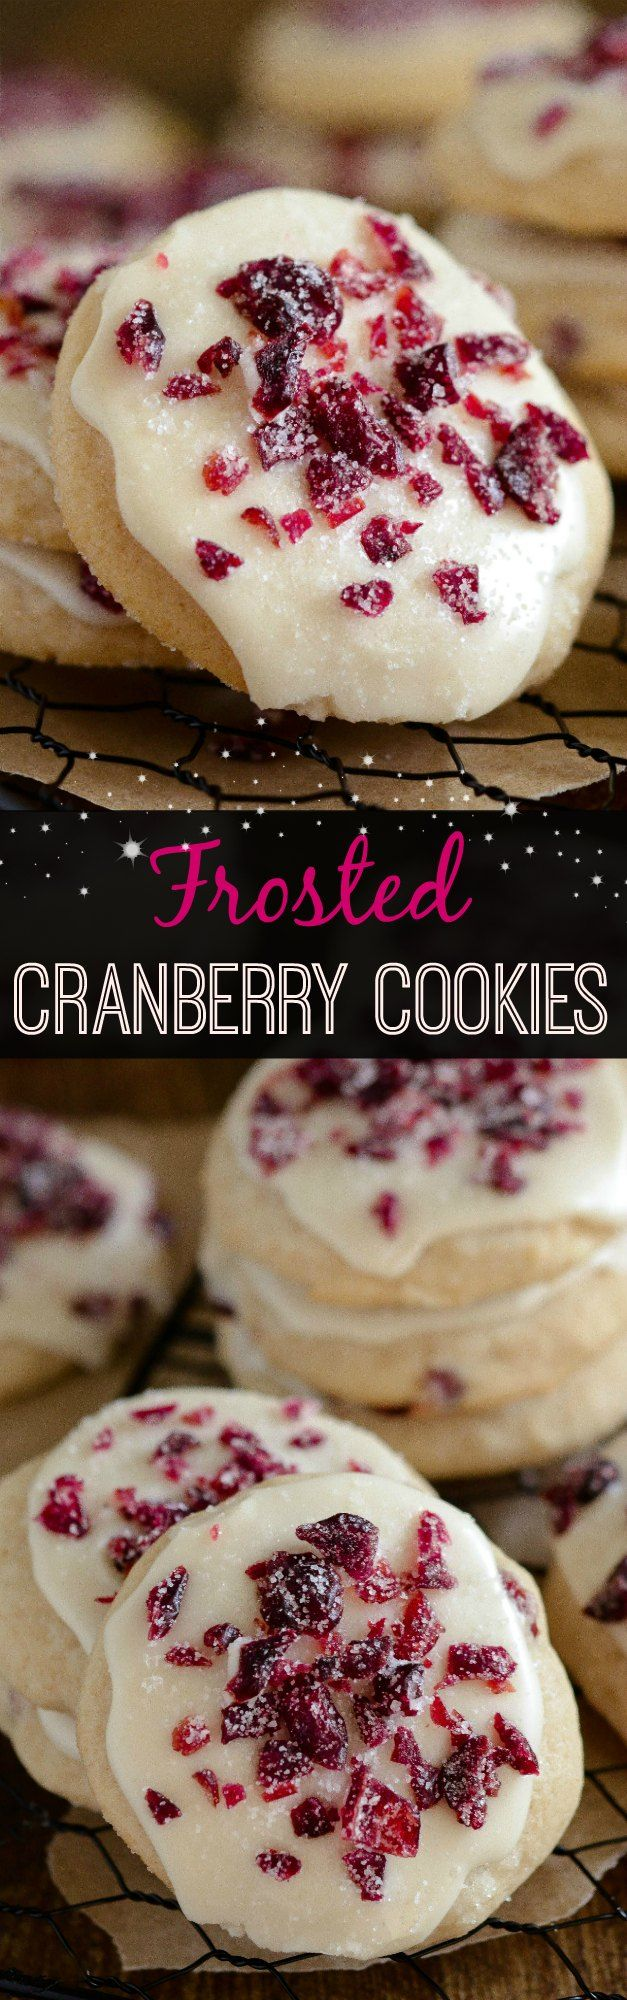 Frosted Cranberry Cookies - sweet soft cranberry shortbread cookies with vanilla cranberry icing!